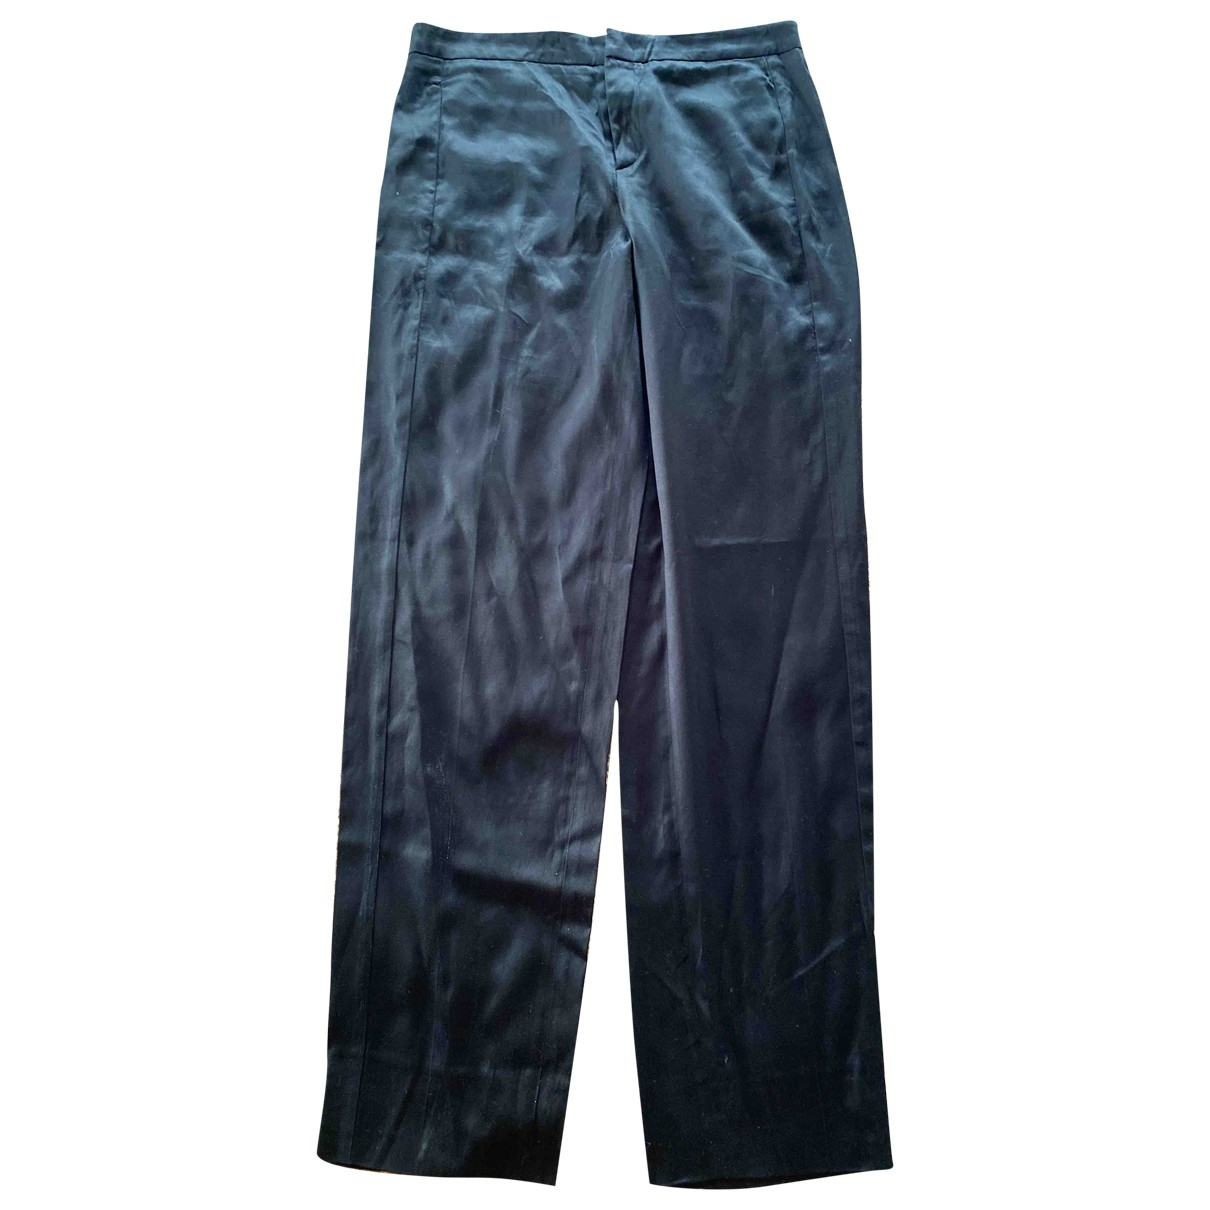 Gucci \N Black Cotton Trousers for Women 44 IT